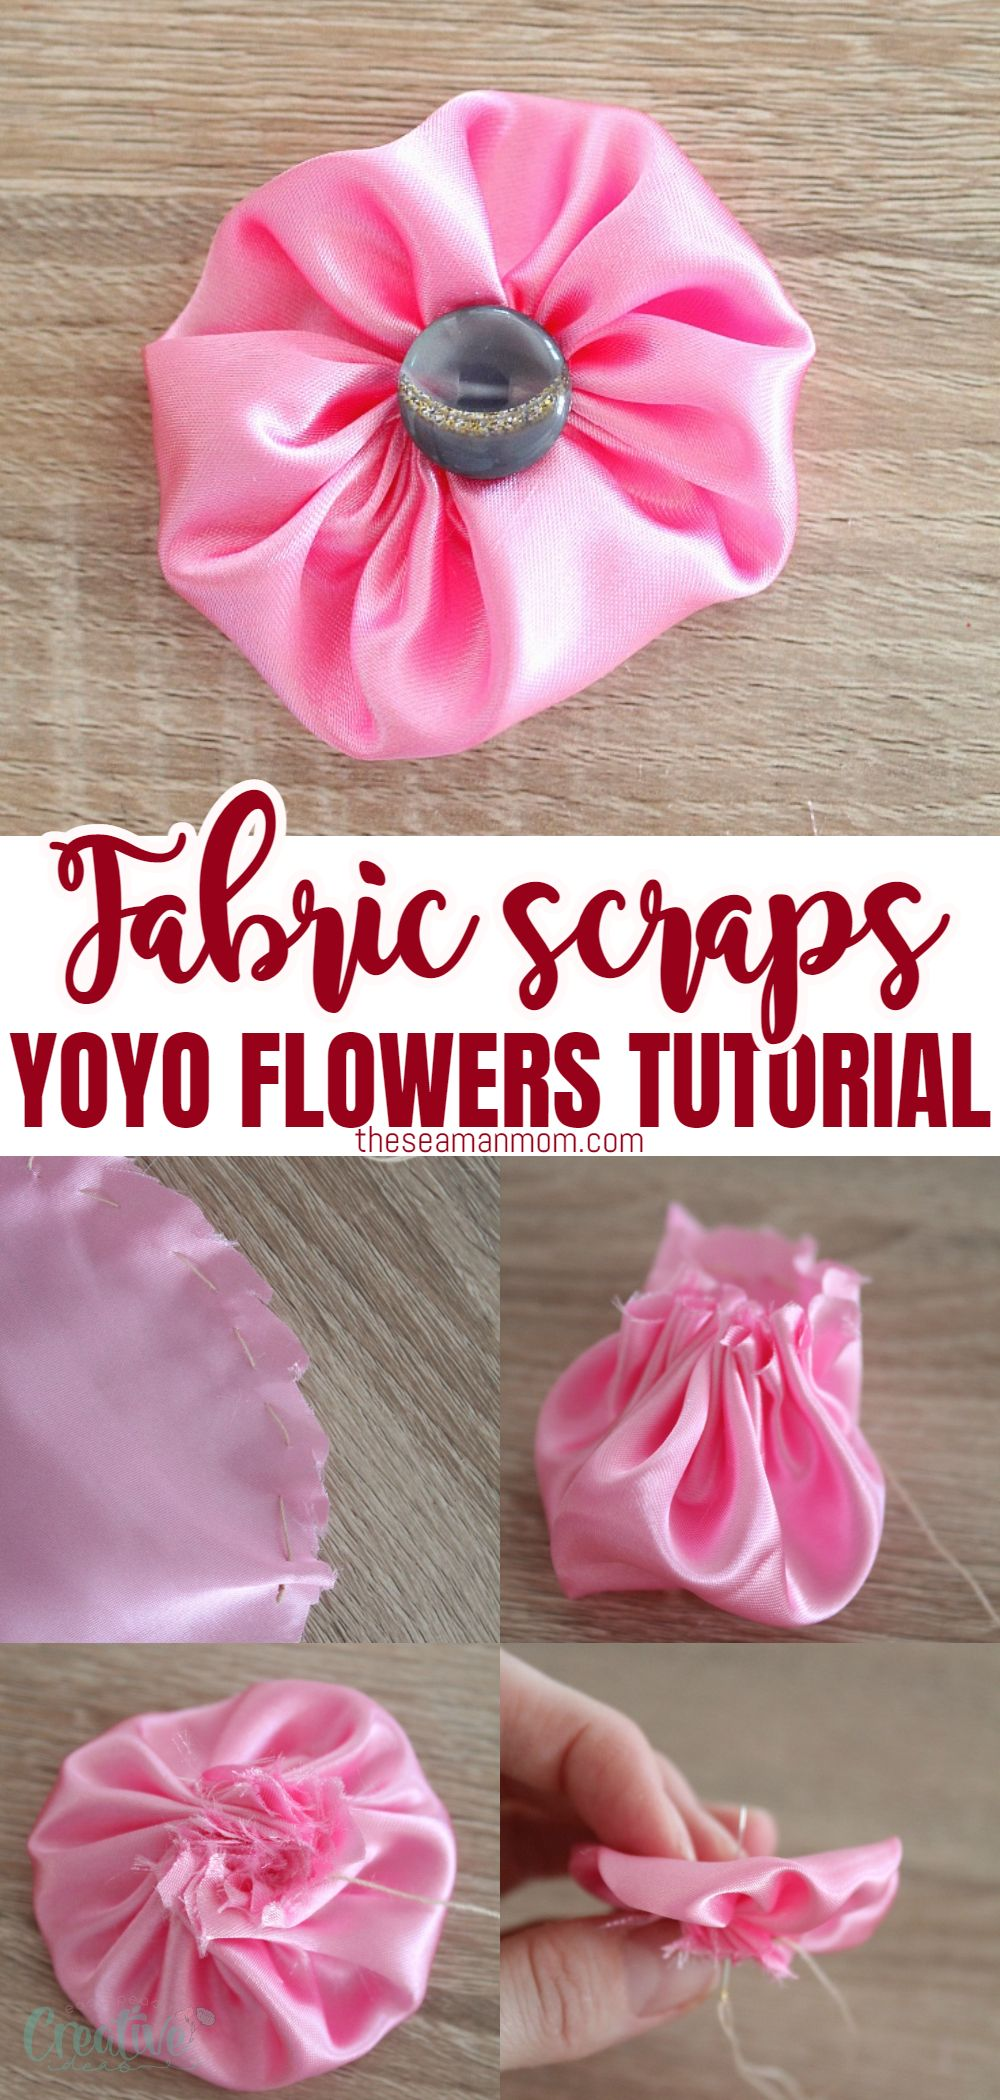 These pretty fabric yoyo flowers are super easy to make and a great project for beginners. Also a perfect way to update your wardrobe on a budget! via @petroneagu